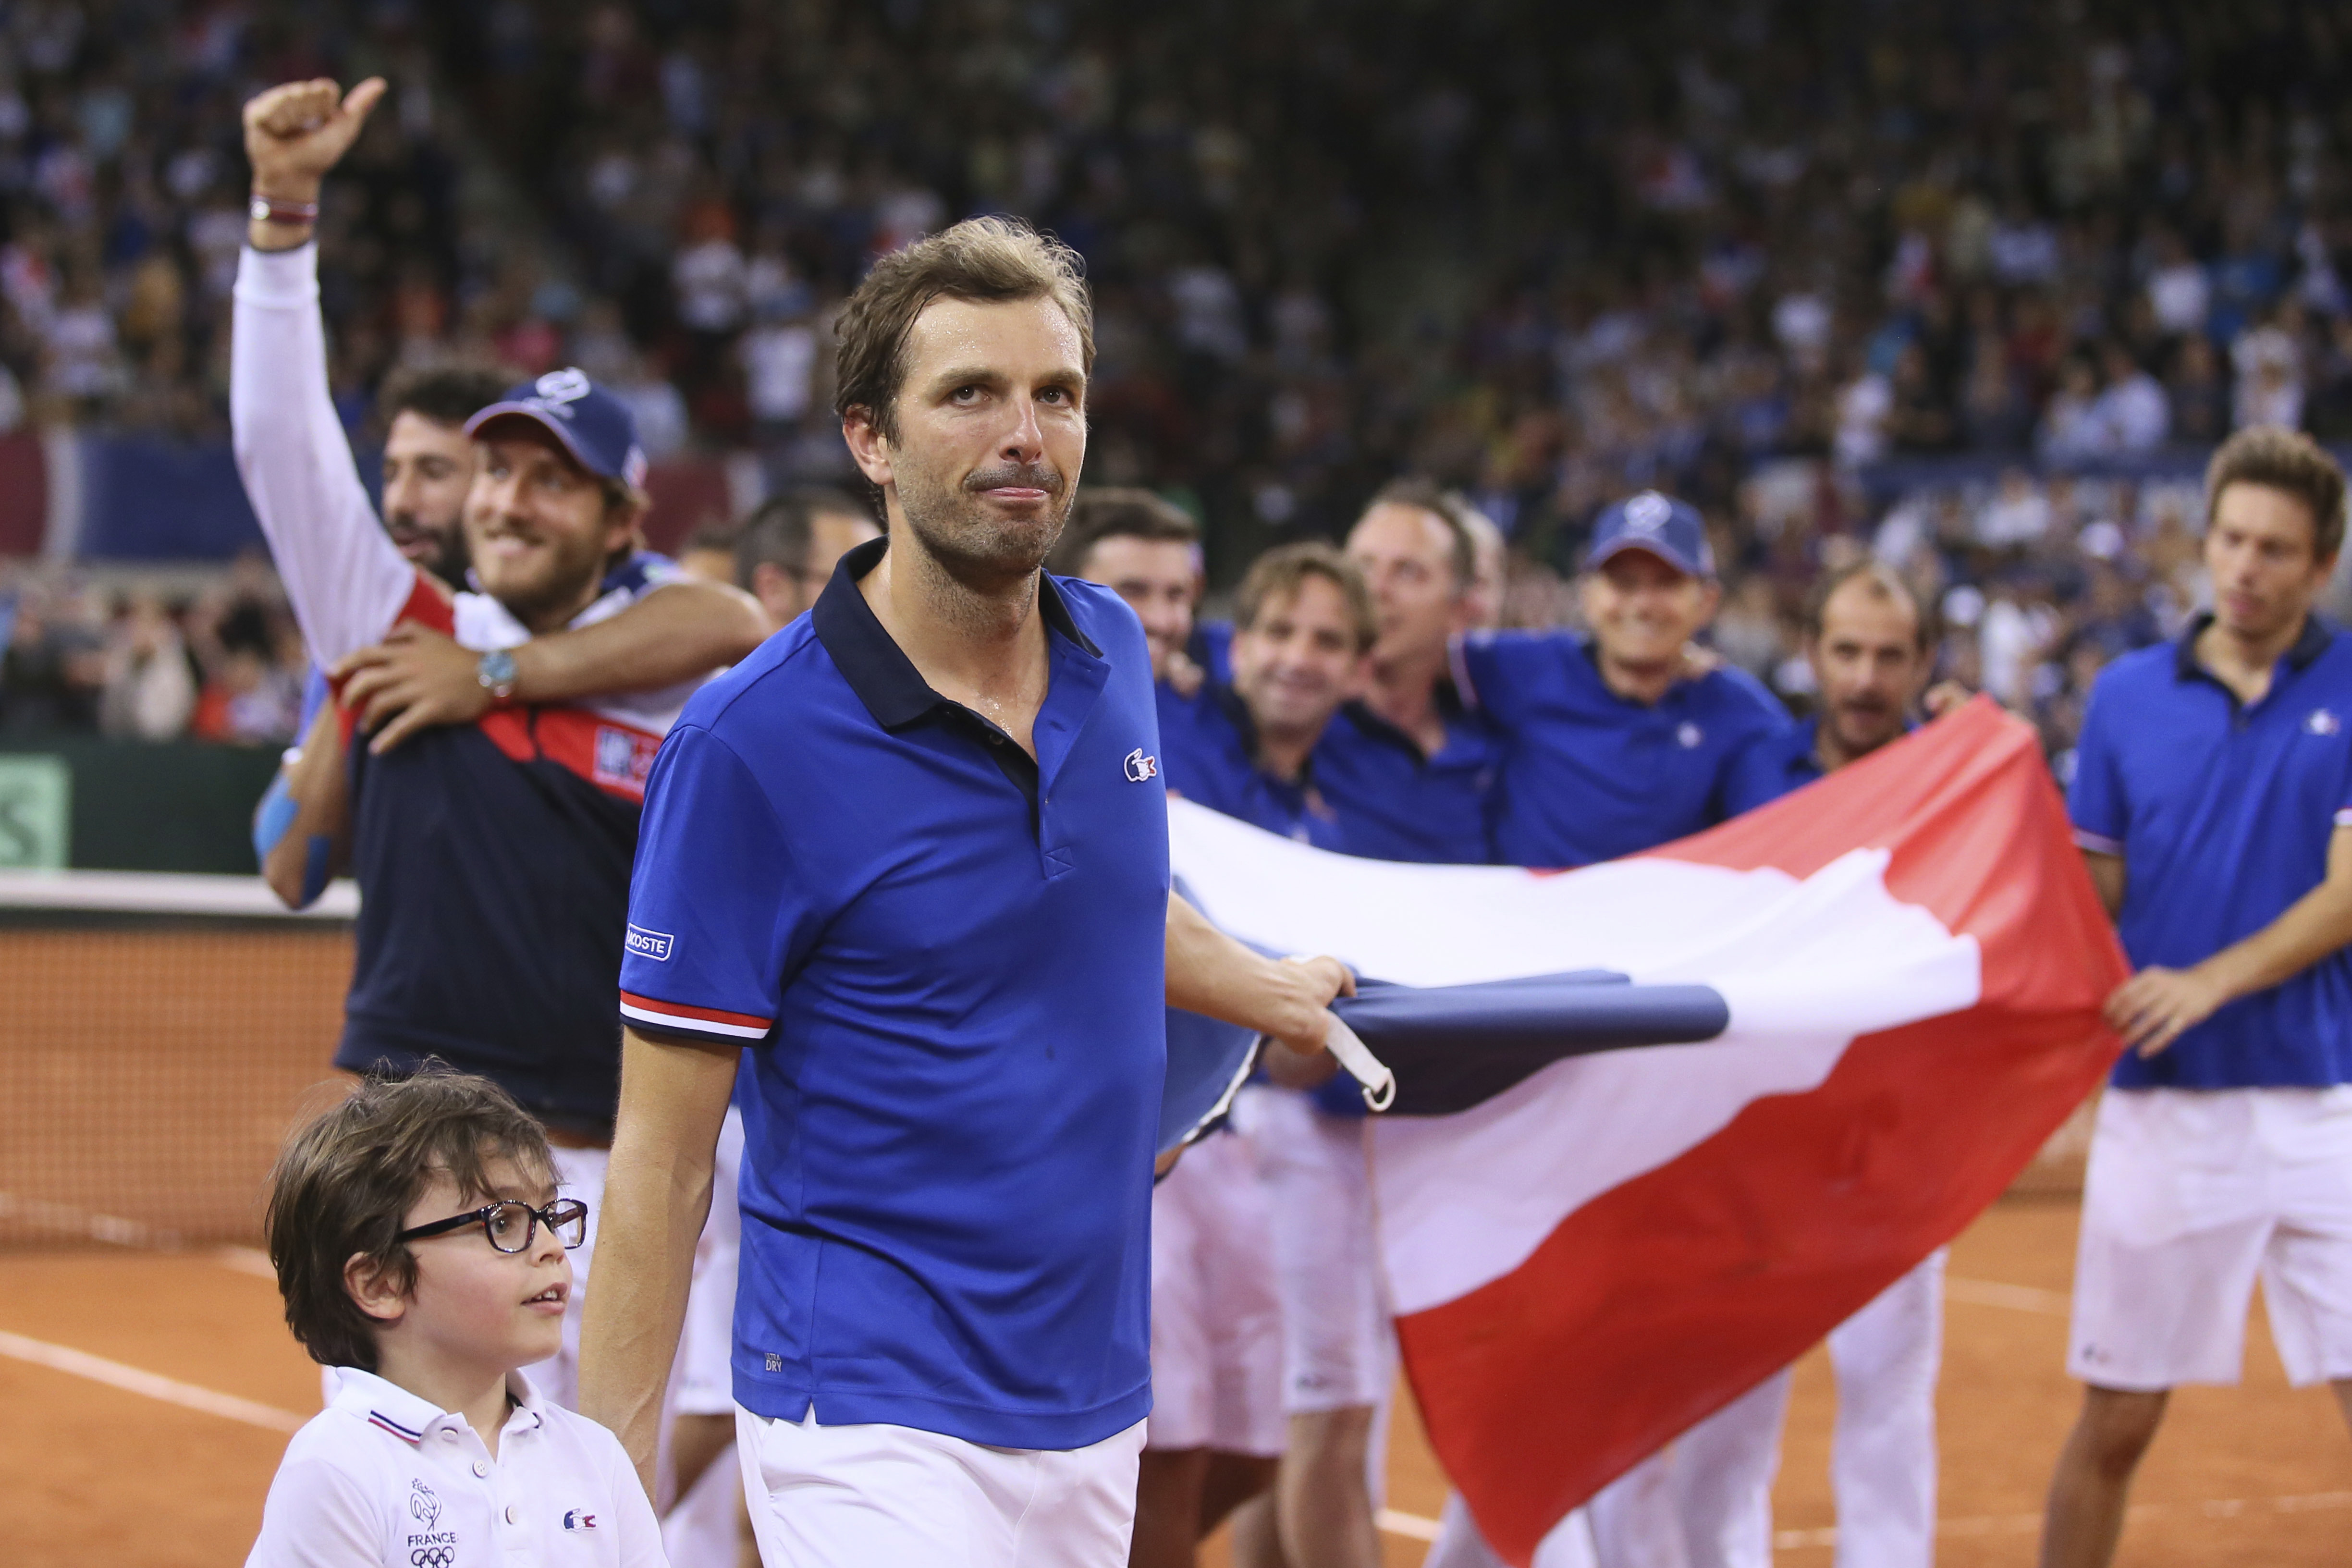 Julien Benneteau of France celebrate with teammate after defeating Jamie Murray and Dominic Inglot of Britain during their doubles Davis Cup quarterfinal tennis match between France and Britain at the Kindarena Stadium of Rouen, France, Saturday, April 8,